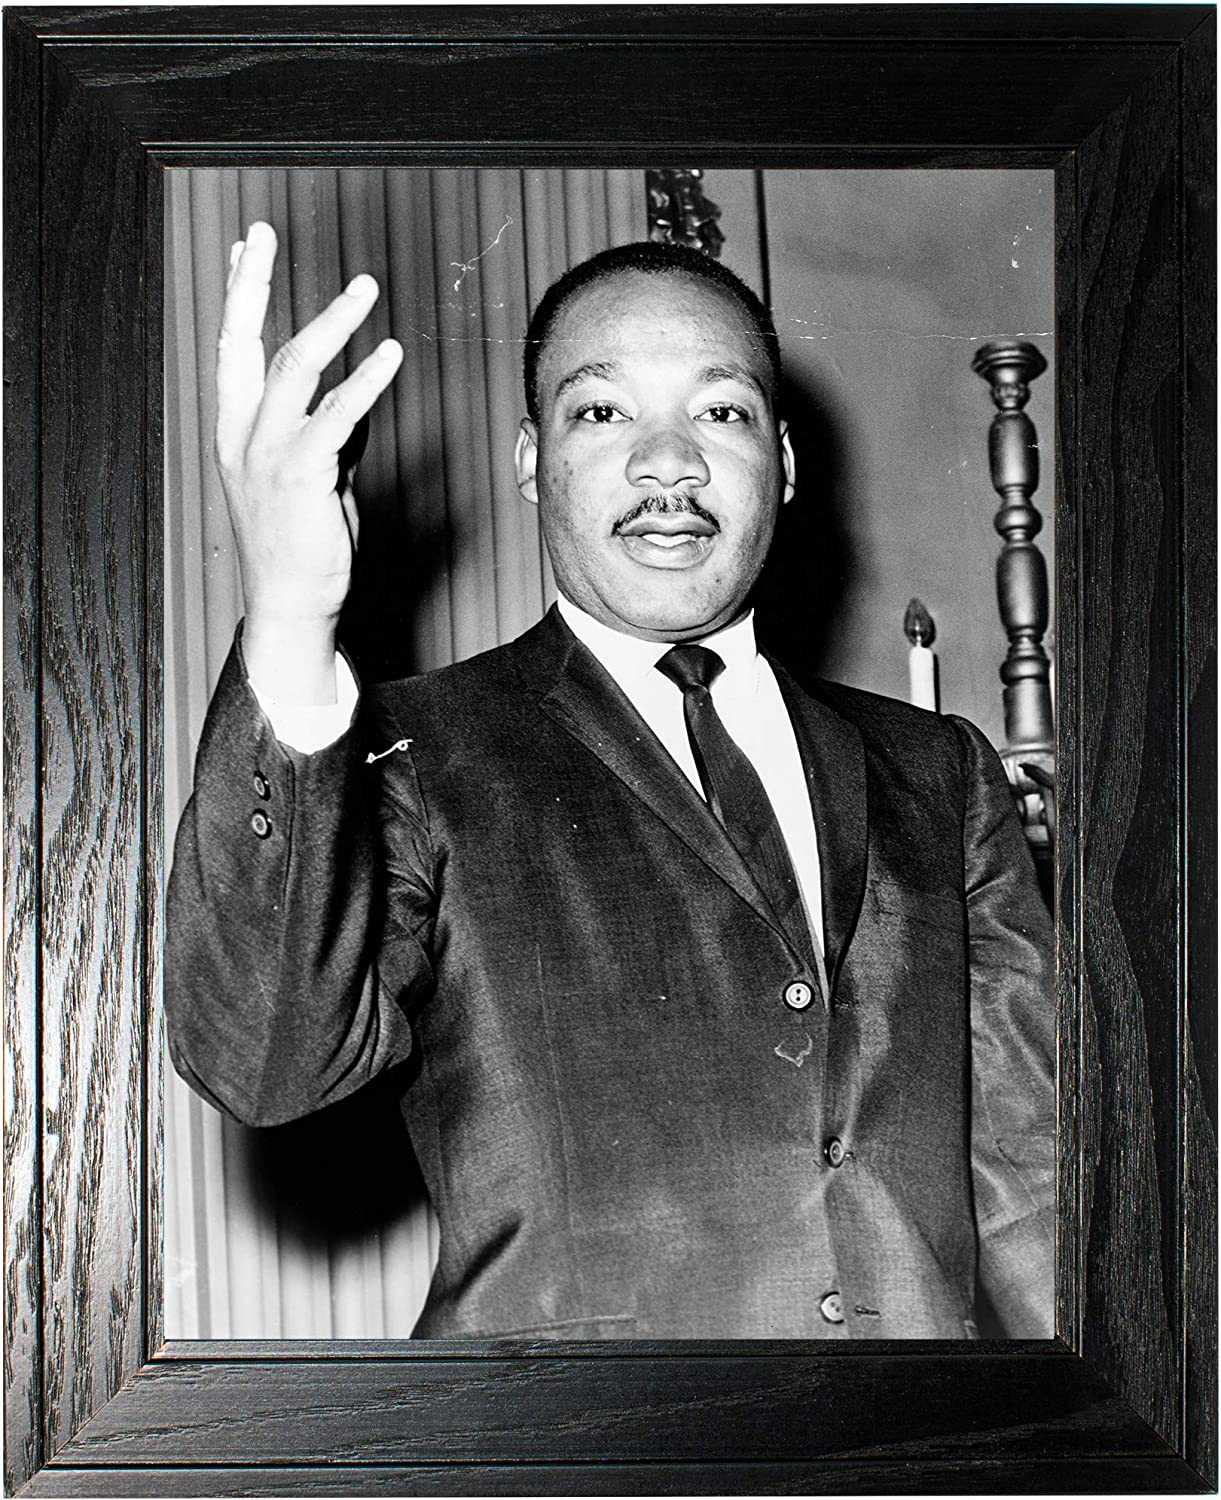 Dr. Martin Luther King Jr. Photograph in Black H Frame - Ranking TOP16 Pine a 70% OFF Outlet